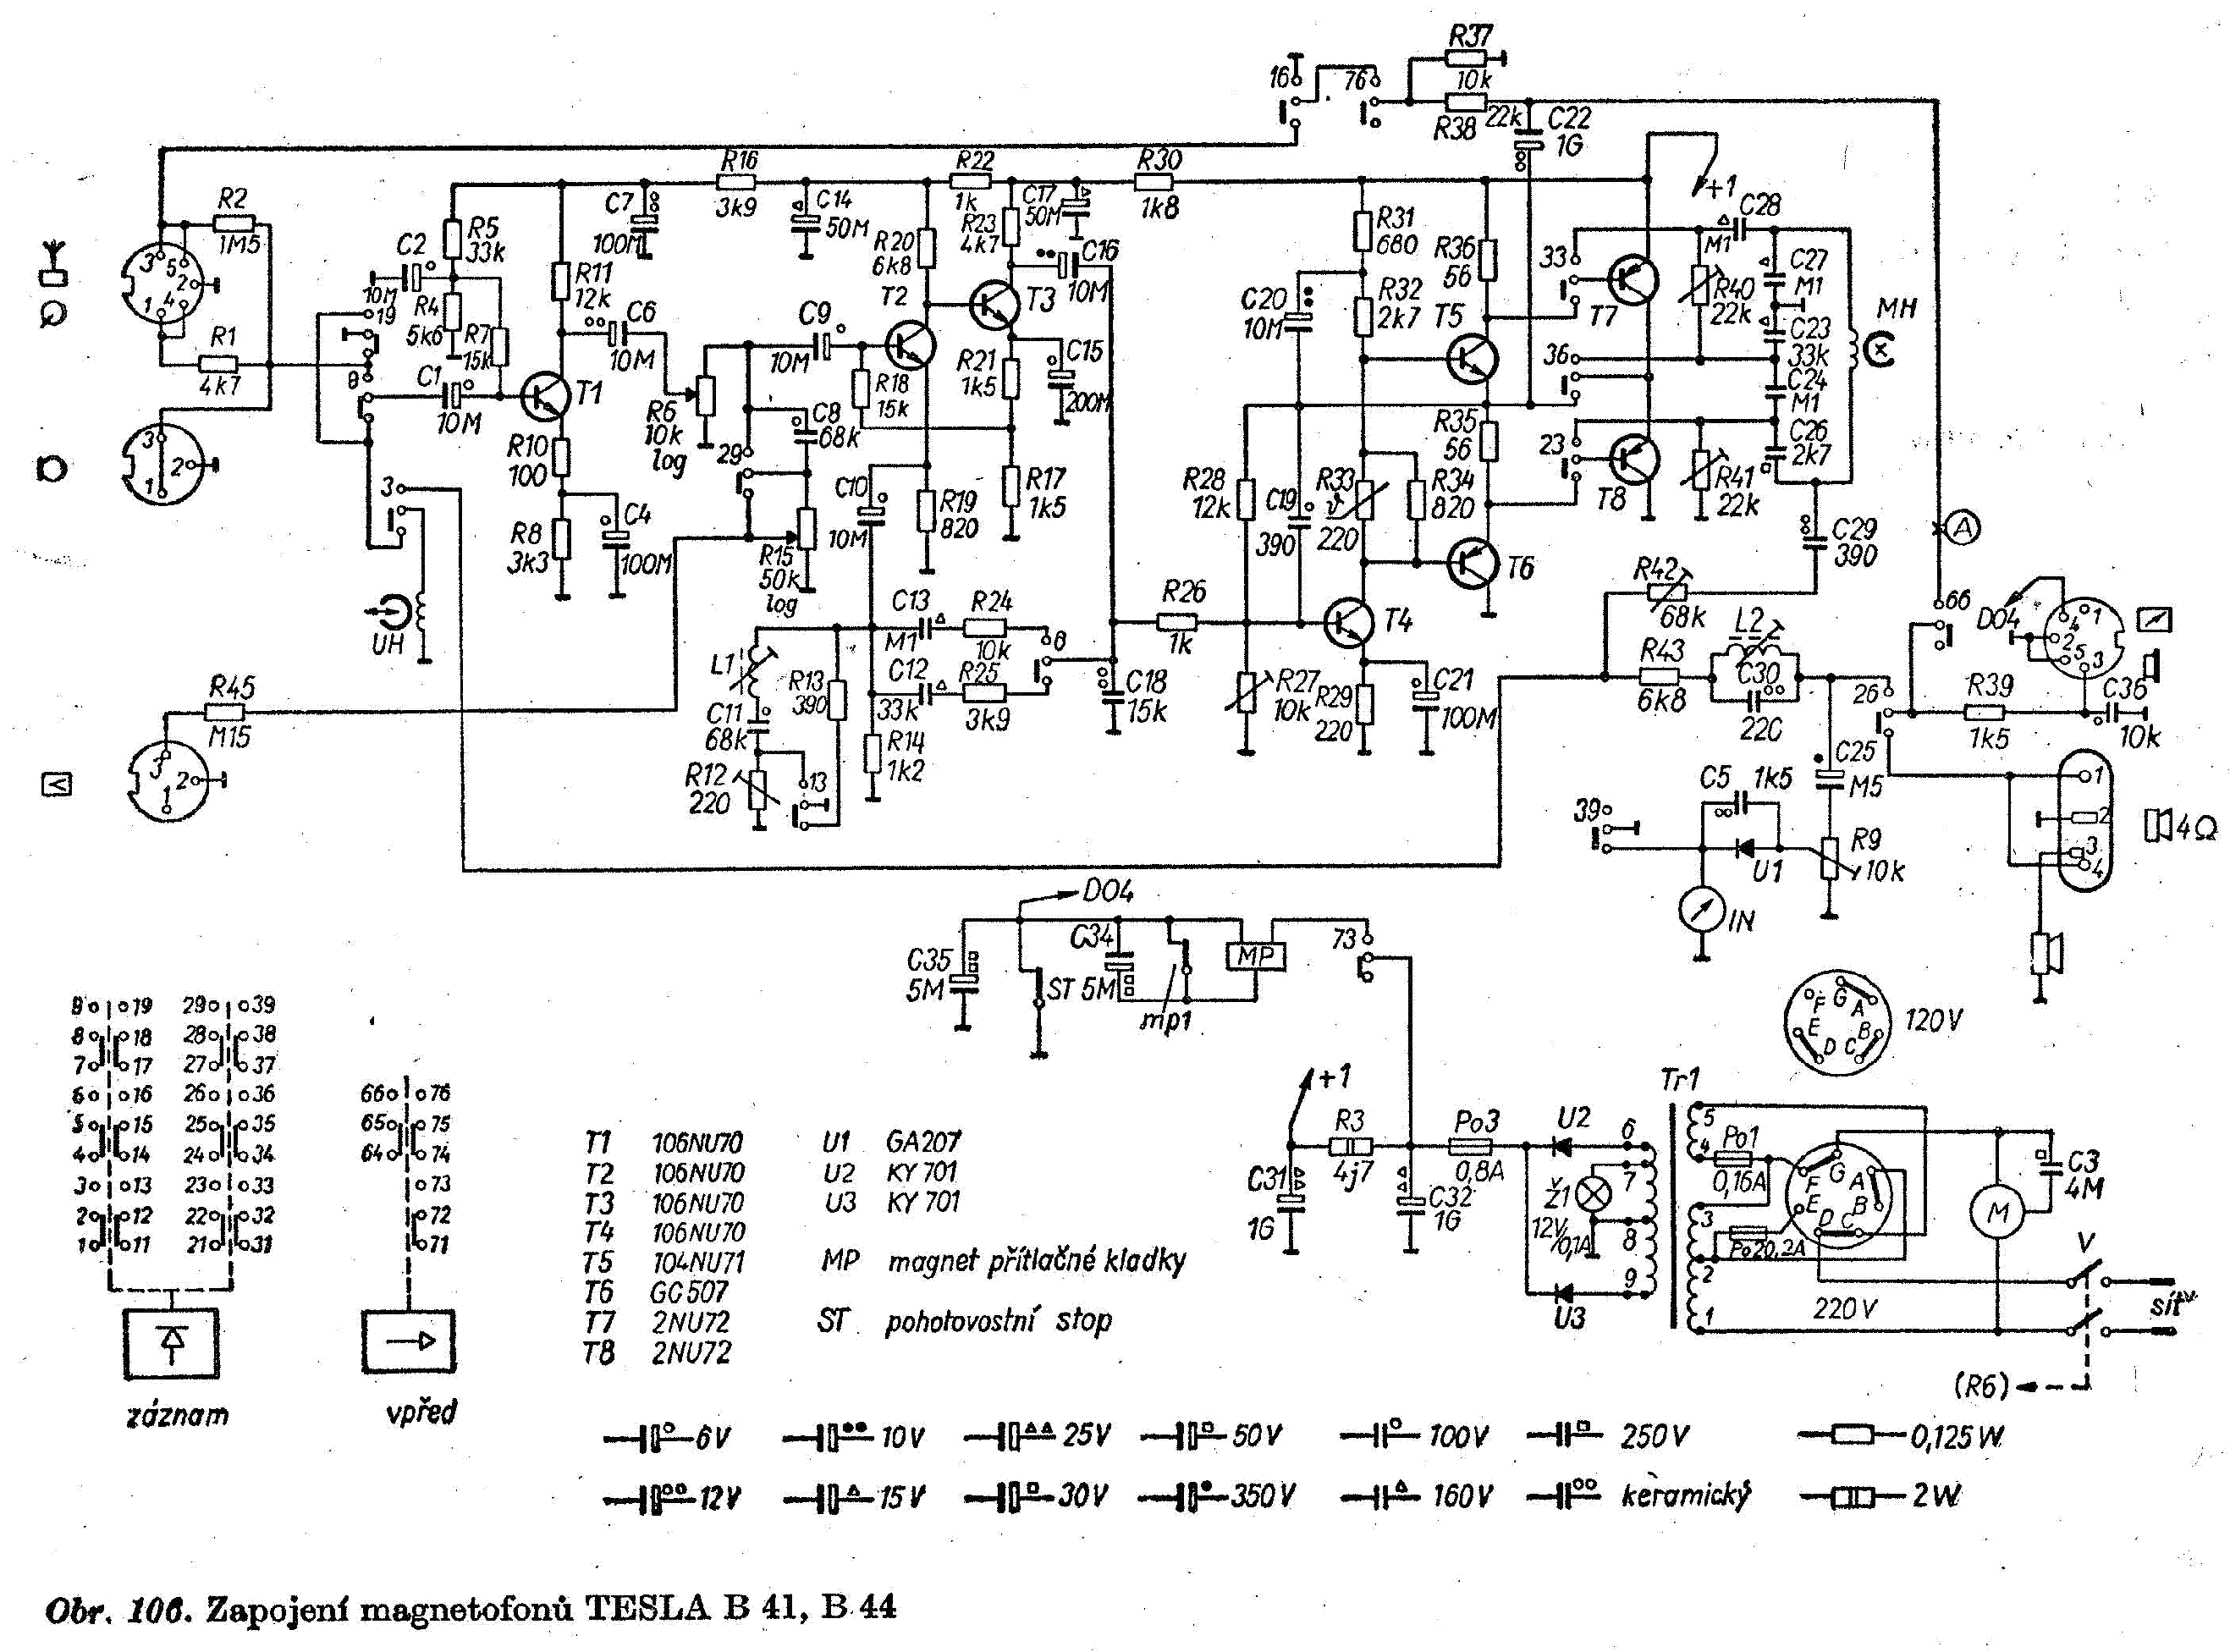 95 Club Car Voltage Regulator Wiring Diagram moreover Nissan Leaf Electric Motor Likewise Stihl Leaf Blower Filter Location likewise Tesla Car Fire additionally Buick Enclave Fuse Box Location For 2012 likewise Electric Bike Battery Replacement. on tesla model s battery location